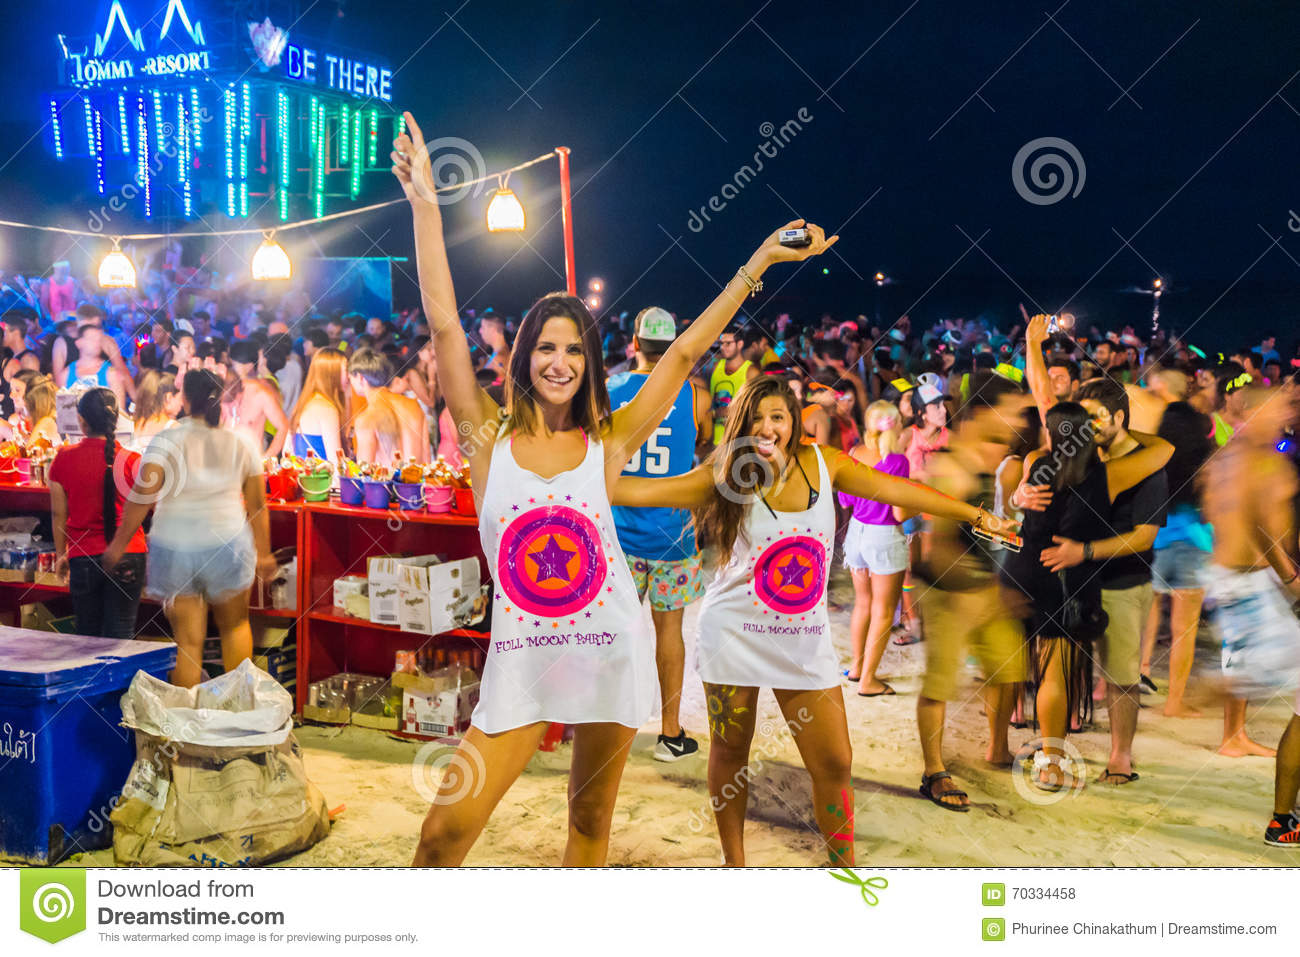 full-moon-party-koh-phangan-thailand-october-haad-rin-thailand-all-night-beach-70334458.jpg